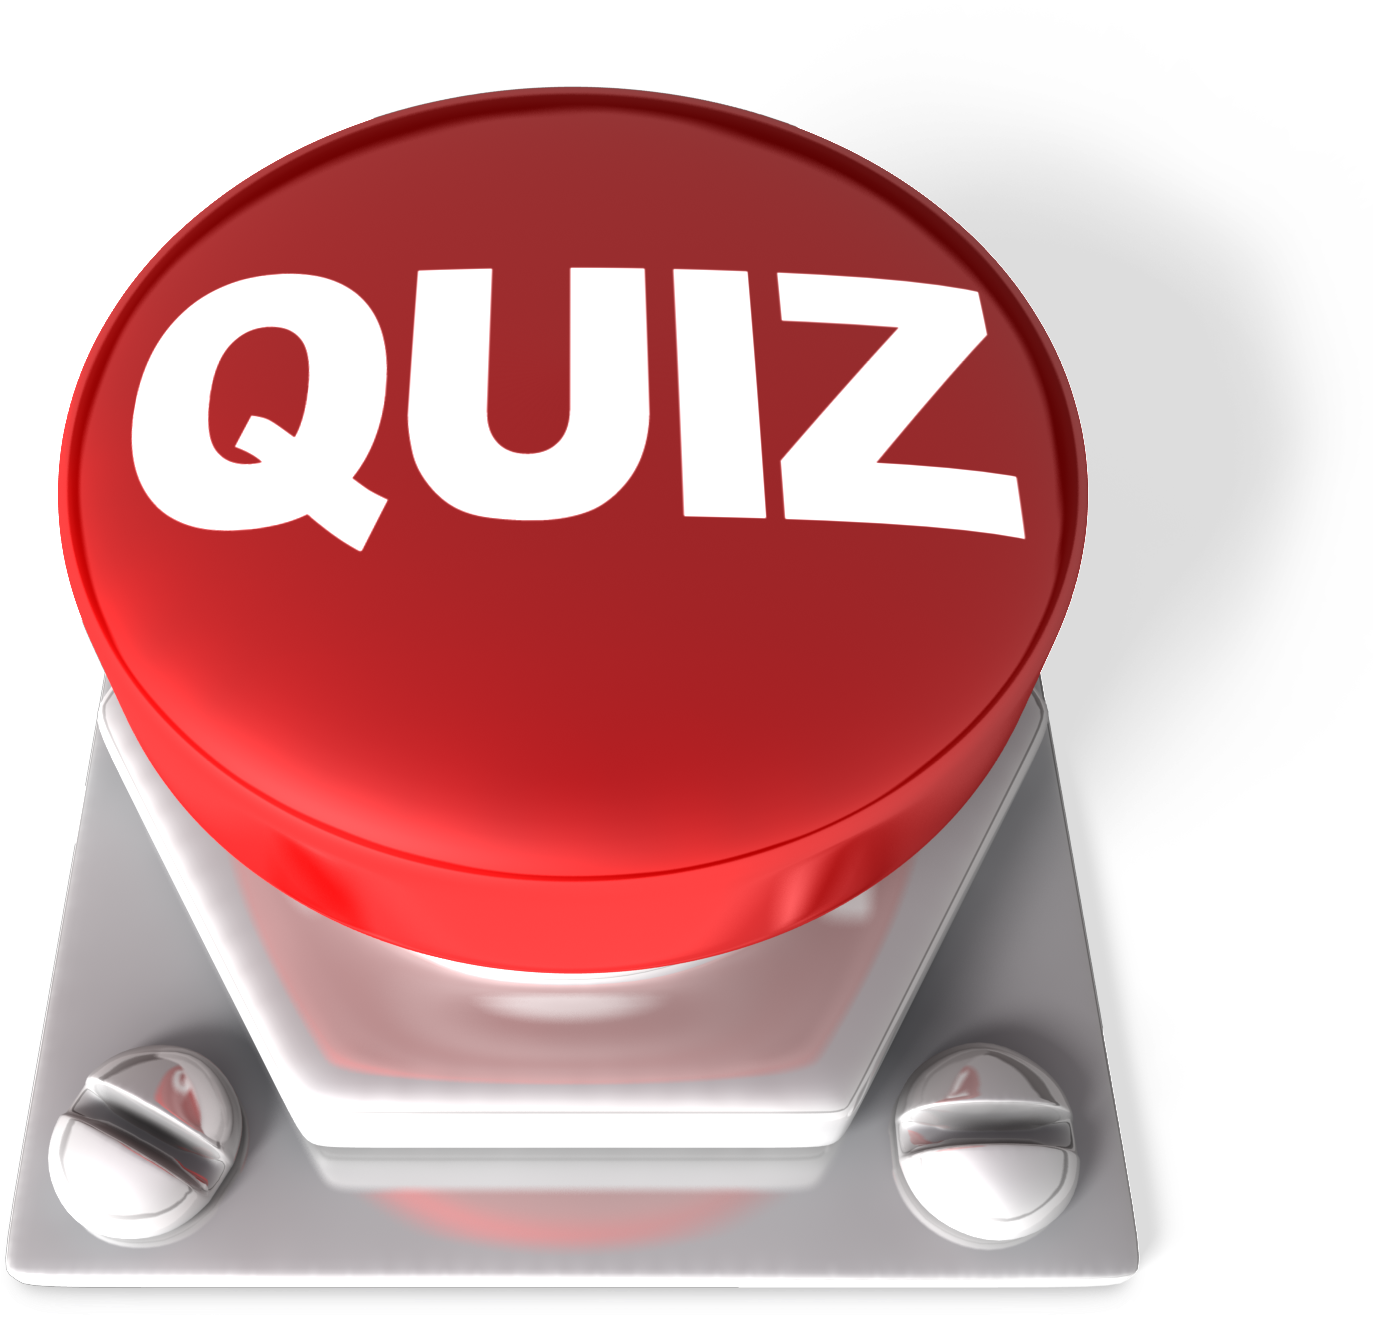 Medical Quiz - Quiz Animations Powerpoint - (1600x1600) Png